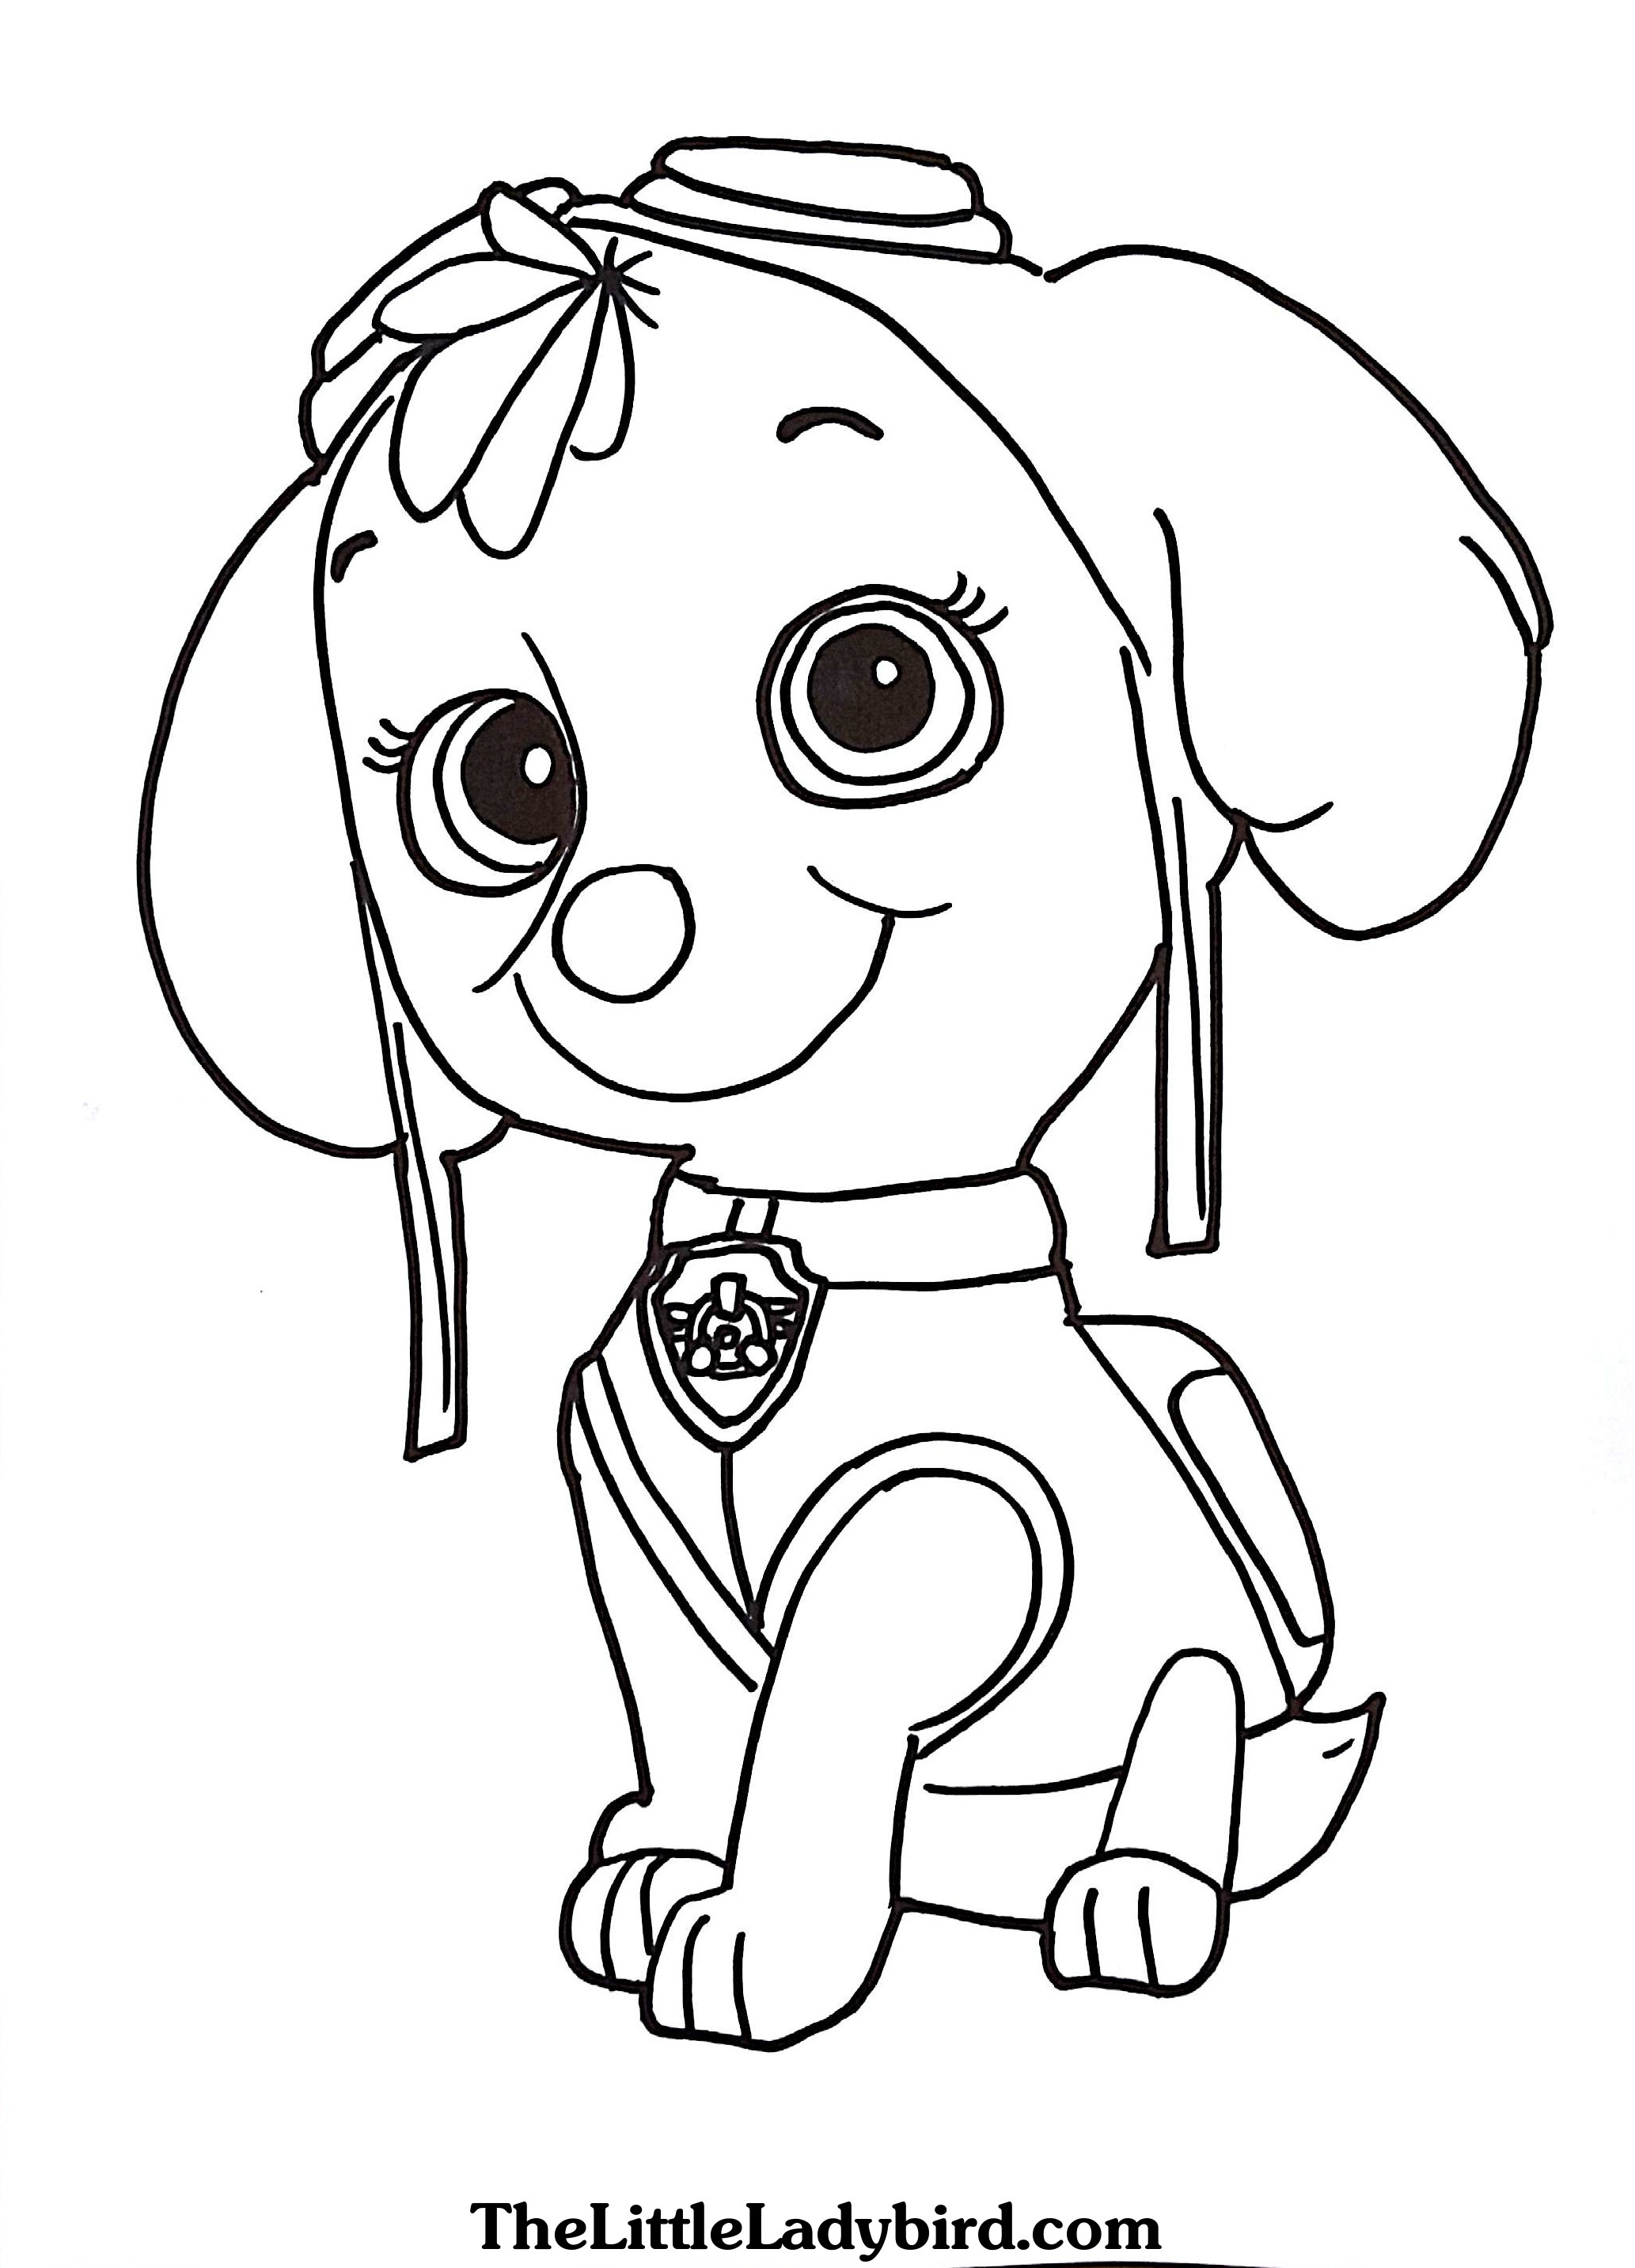 2066x2866 Paw Patrol Coloring Pages Skye Printable In Snazzy Draw Paint Page